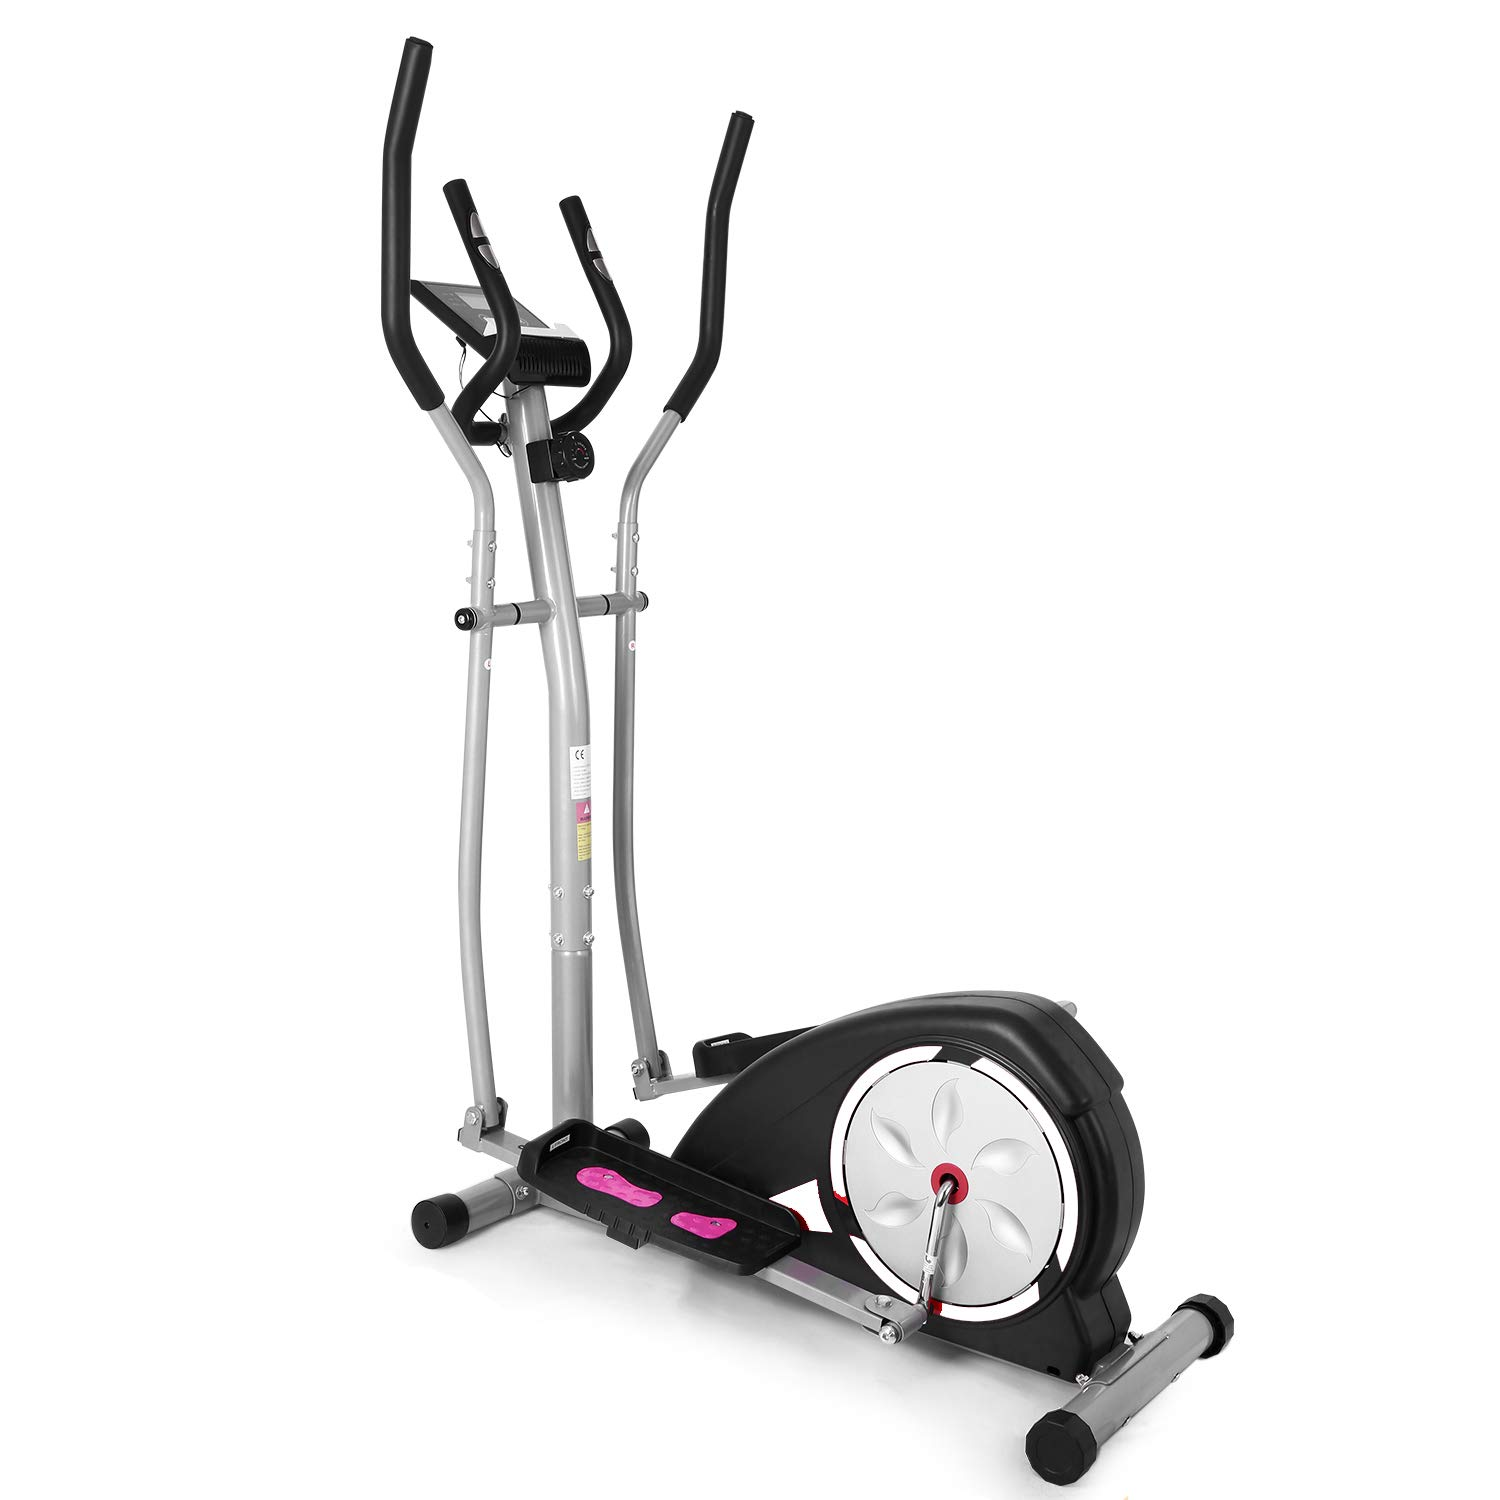 ncient Elliptical Machine Eliptical Trainer Exercise Machine for Home Use Magnetic Smooth Quiet Driven with LCD Monitor and Pulse Rate Grips (White) by ncient